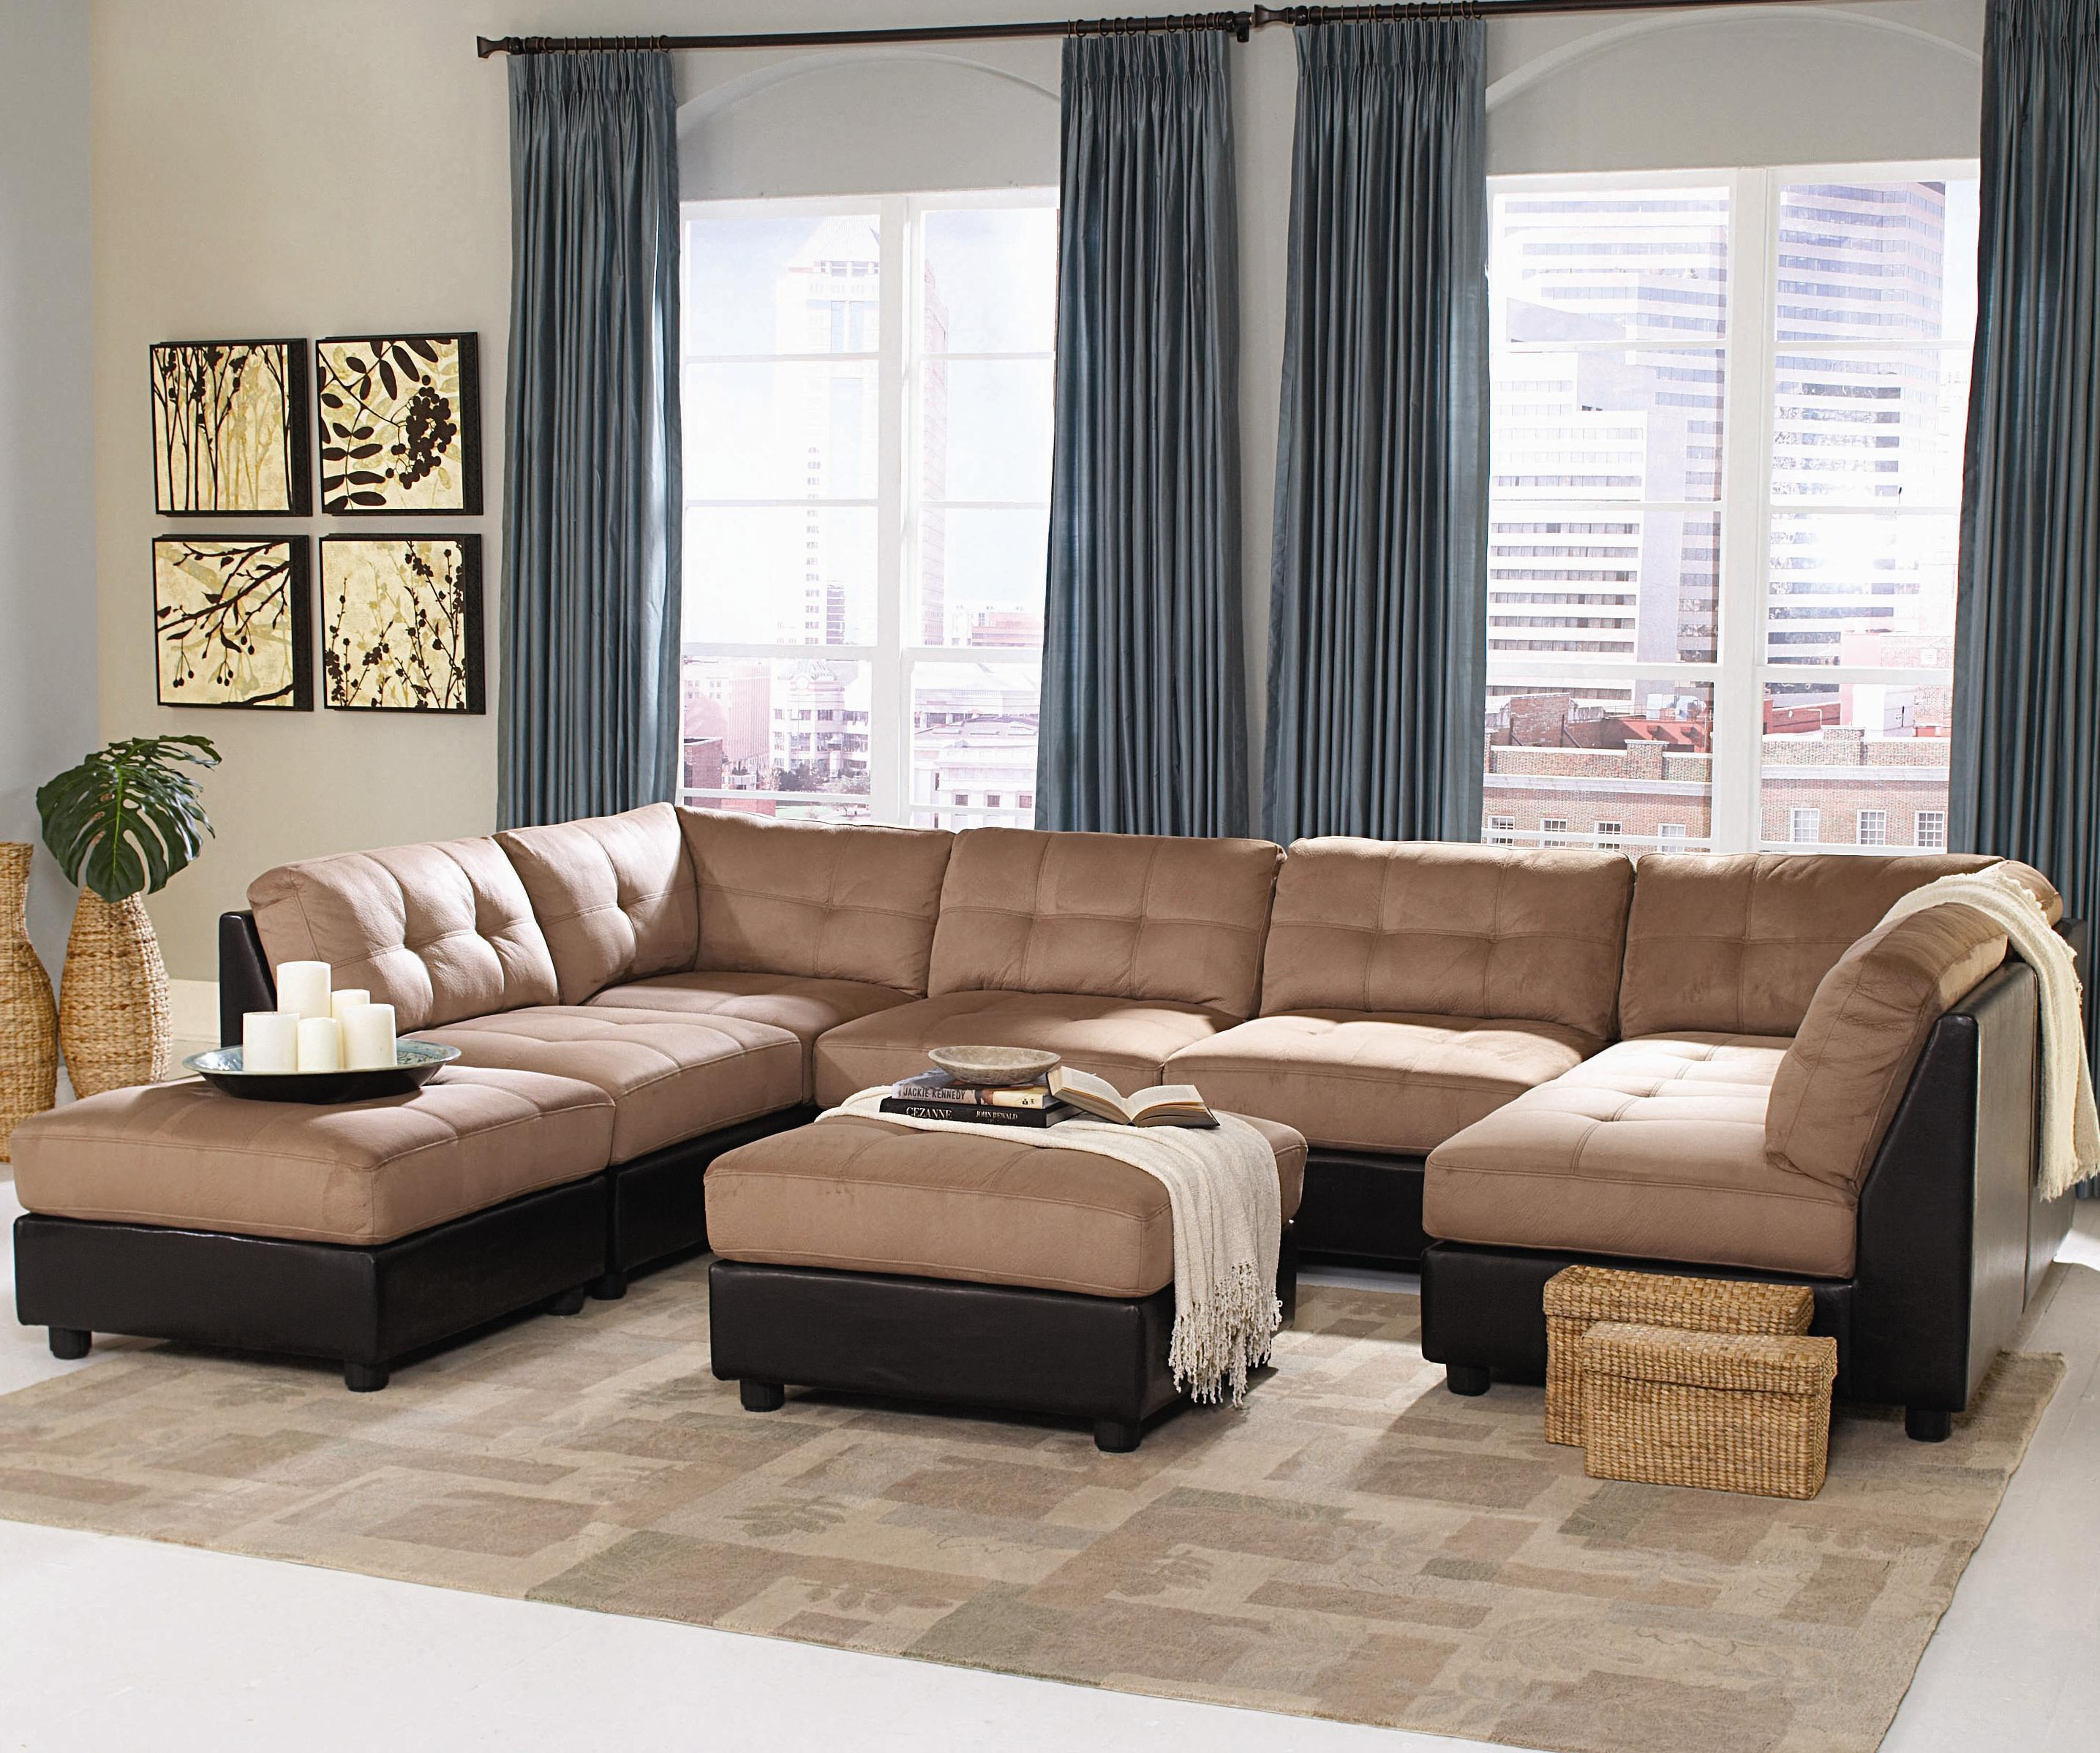 Coaster Claude Contemporary Two Tone Sectional Sofa - Coaster Fine Furniture : two tone sectional sofa - Sectionals, Sofas & Couches